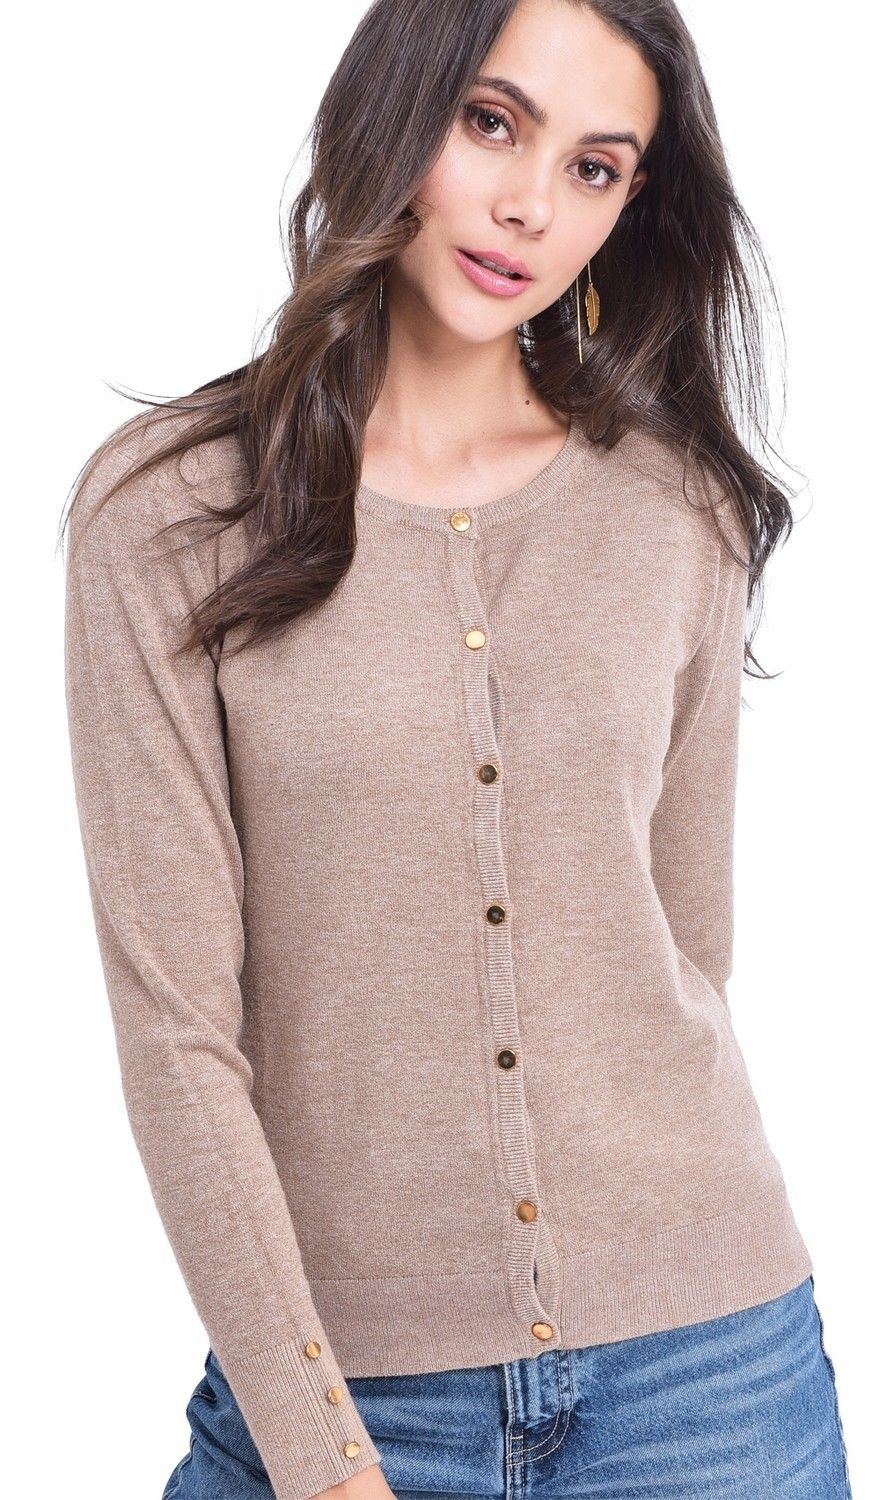 Assuili Round Neck Cardigan with Gold Buttons in Beige